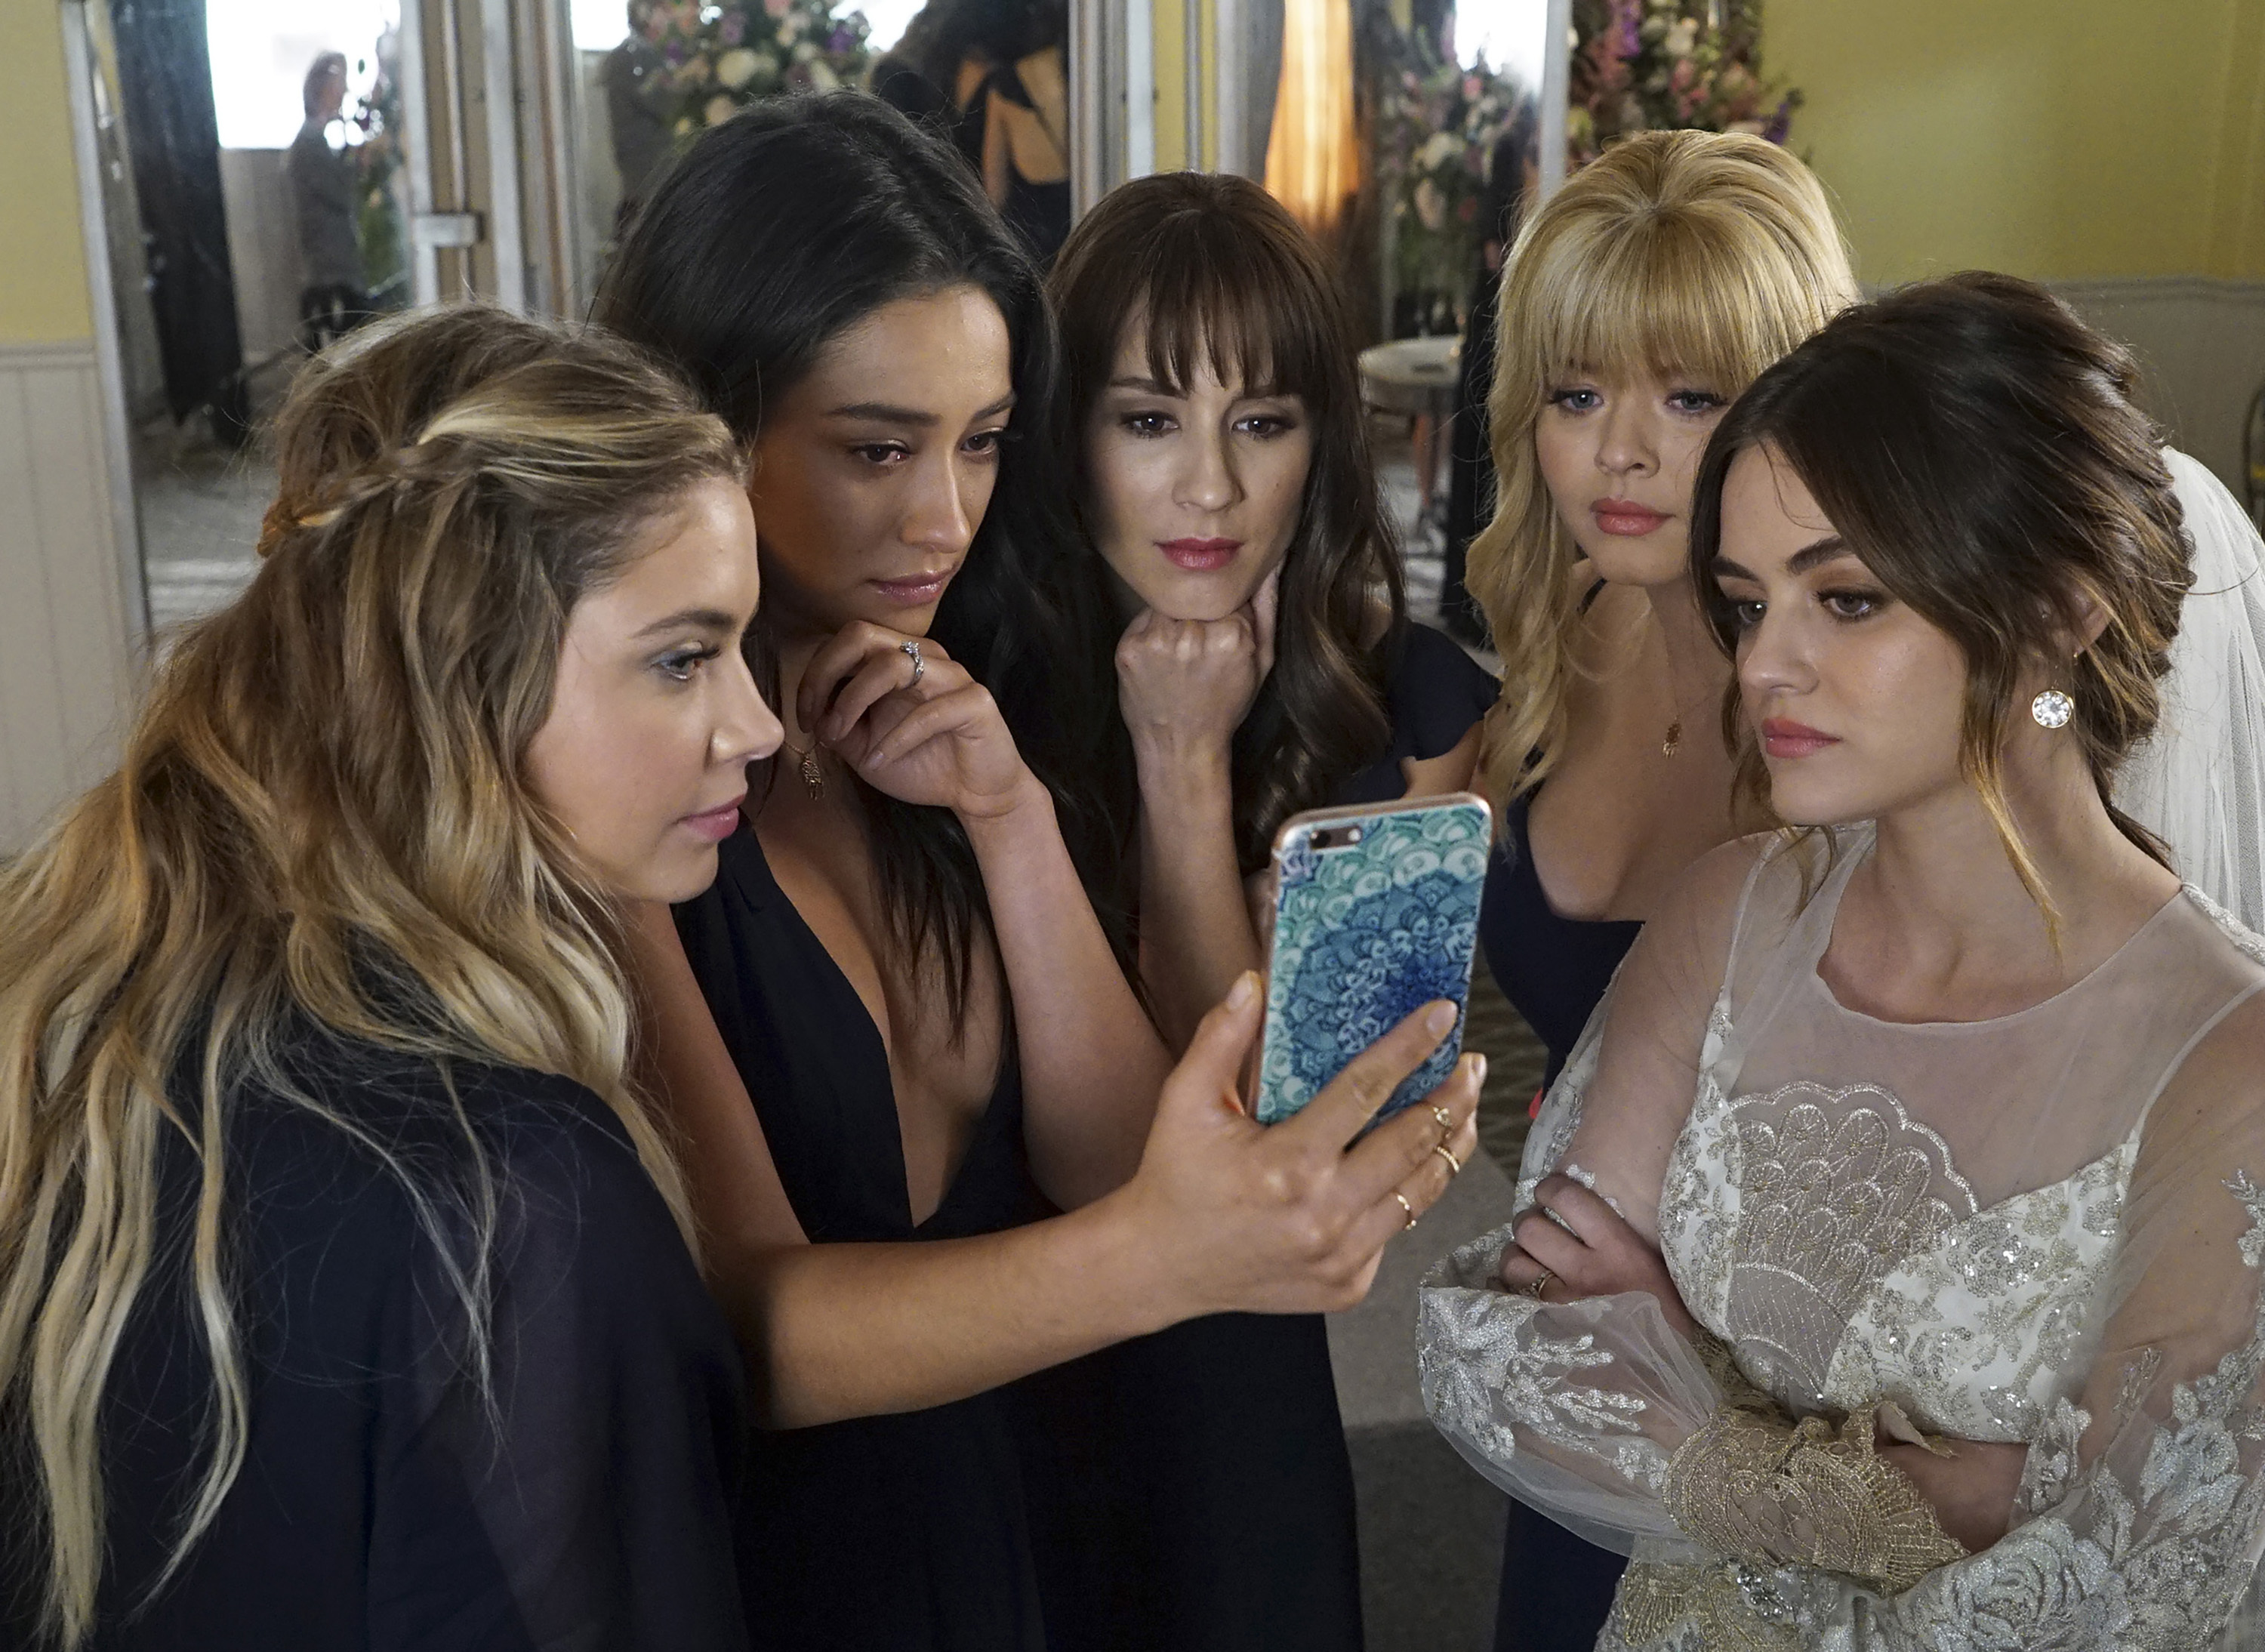 Aria's wedding dress on 'Pretty Little Liars' was a design by Claire Pettibone. (Freeform/Eric McCandless)